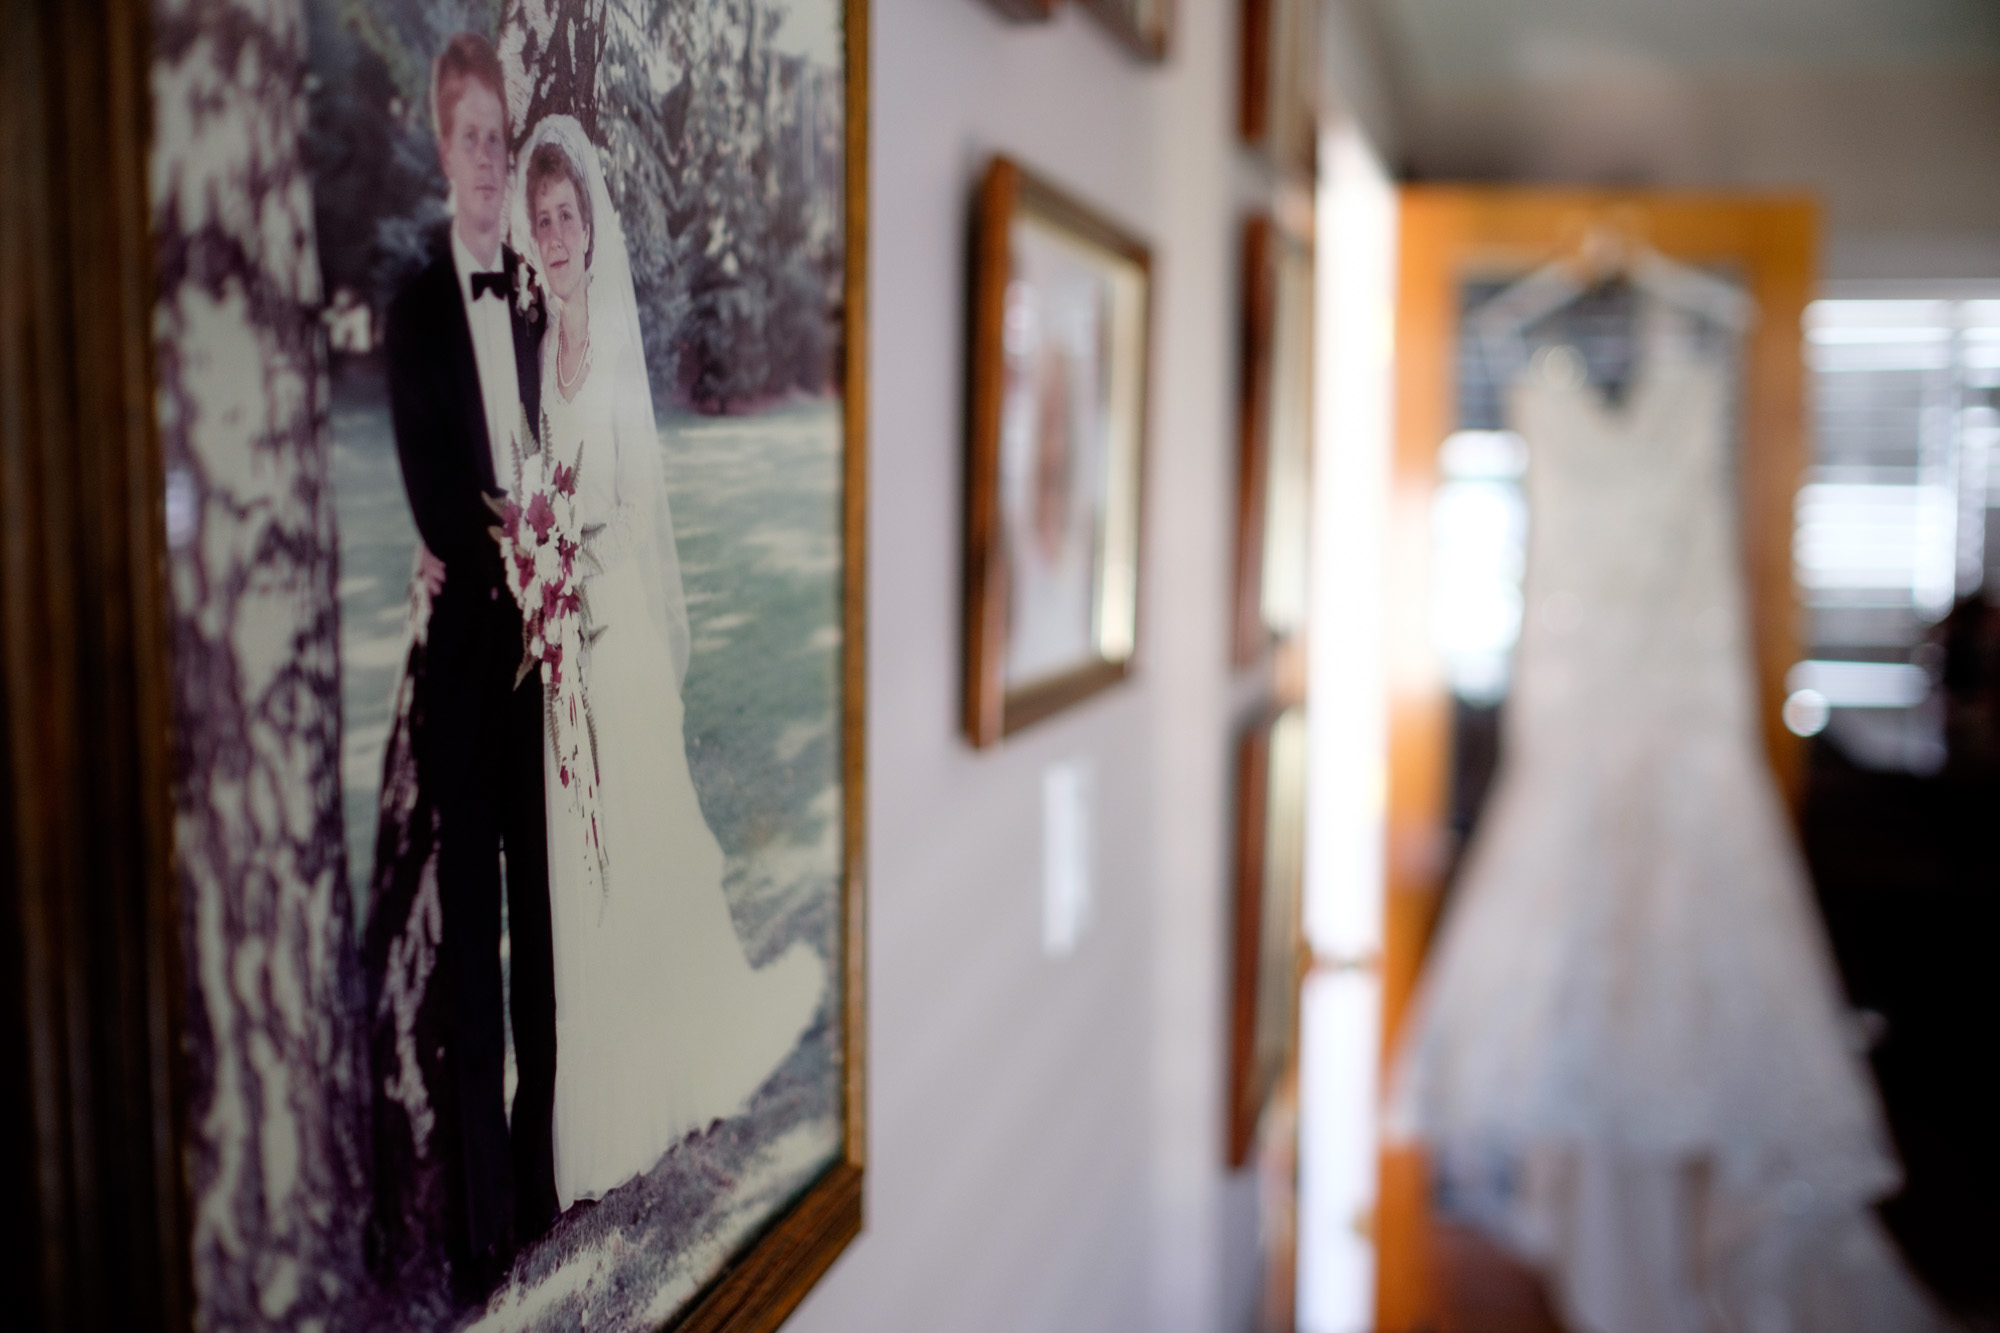 The brides wedding dress hangs in her parents home before the wedding ceremony in Cambridge at Whistle Bear.